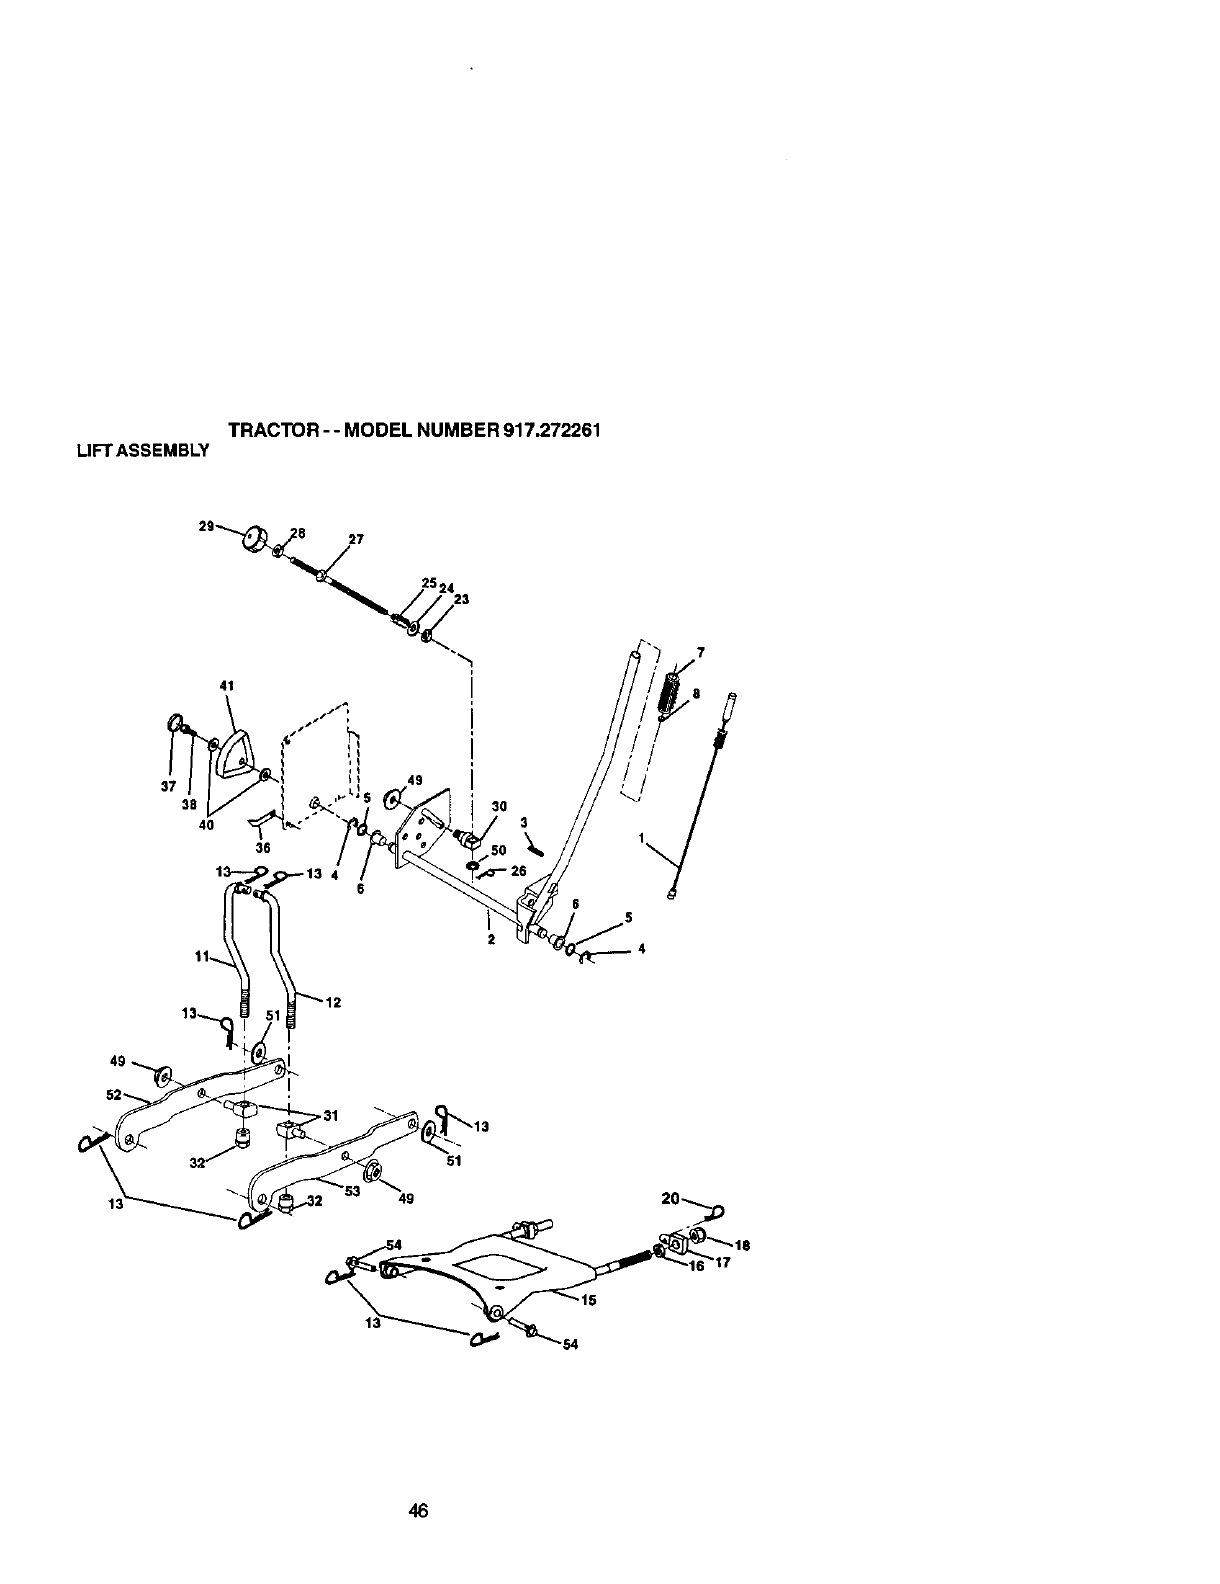 Page 46 of Craftsman Lawn Mower 917272261 User Guide